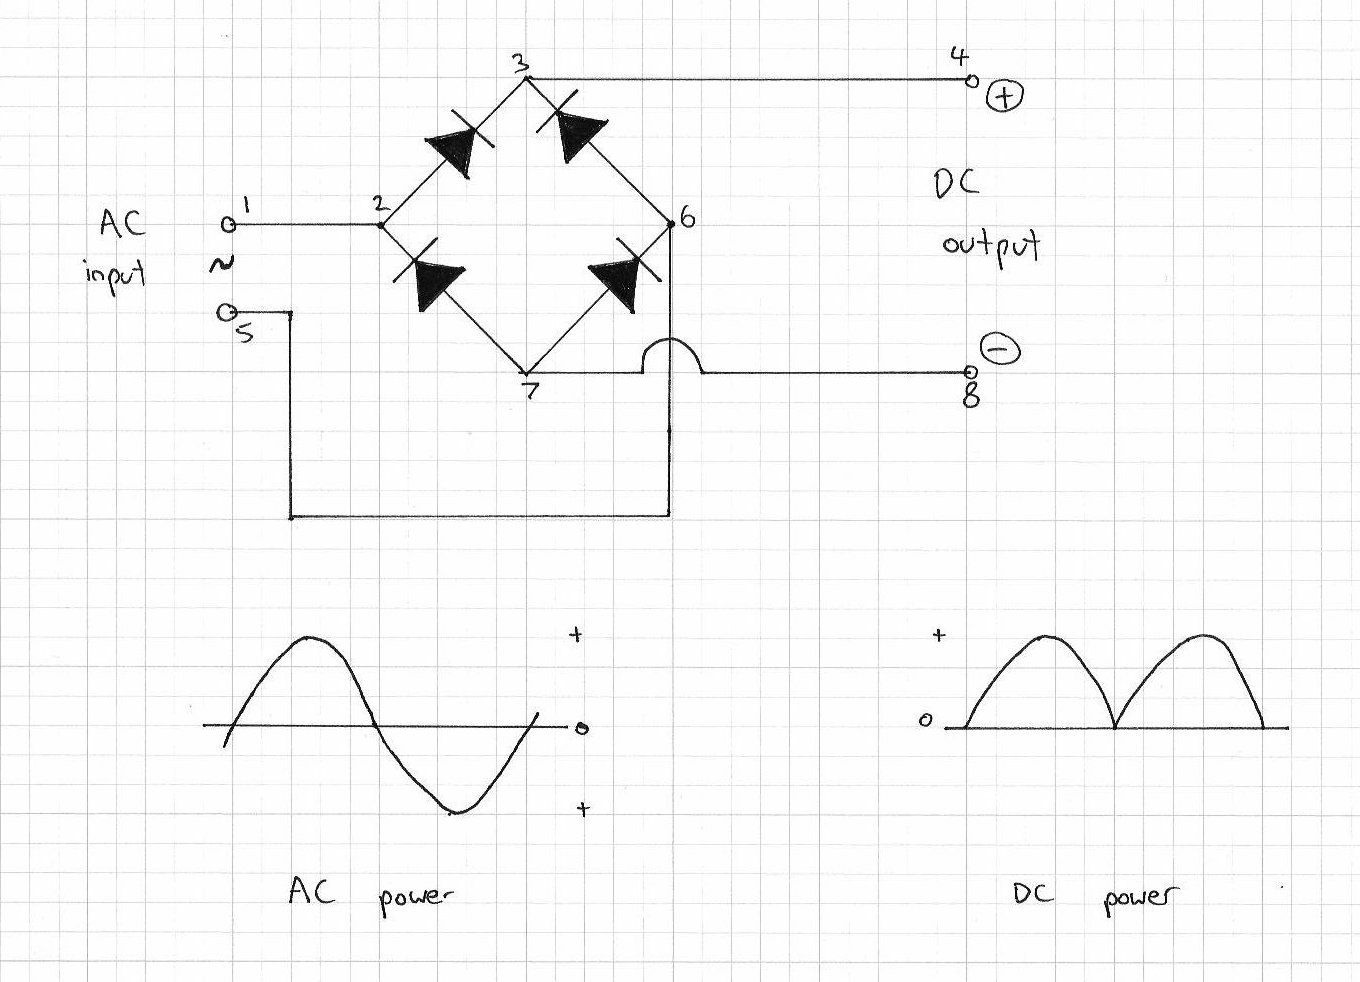 hight resolution of when the ac power is between 0 and maximum wave the positive dc rail is fed by the path 1 2 3 4 the negative dc rail is 8 7 6 5